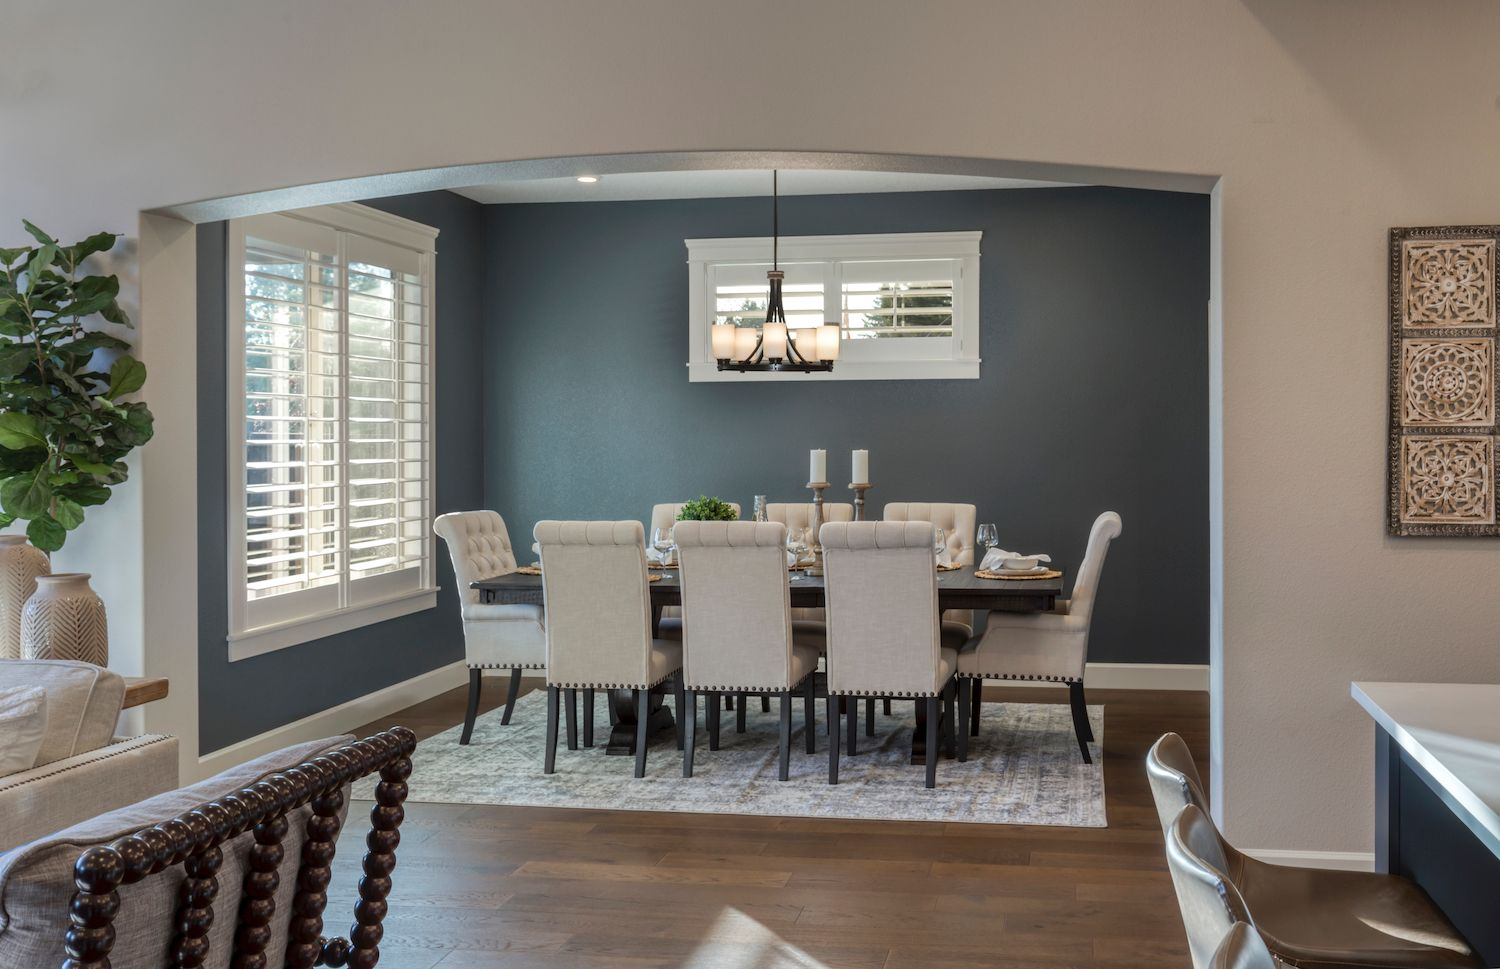 Living Area featured in the Willamette By New Tradition Homes in Richland, WA